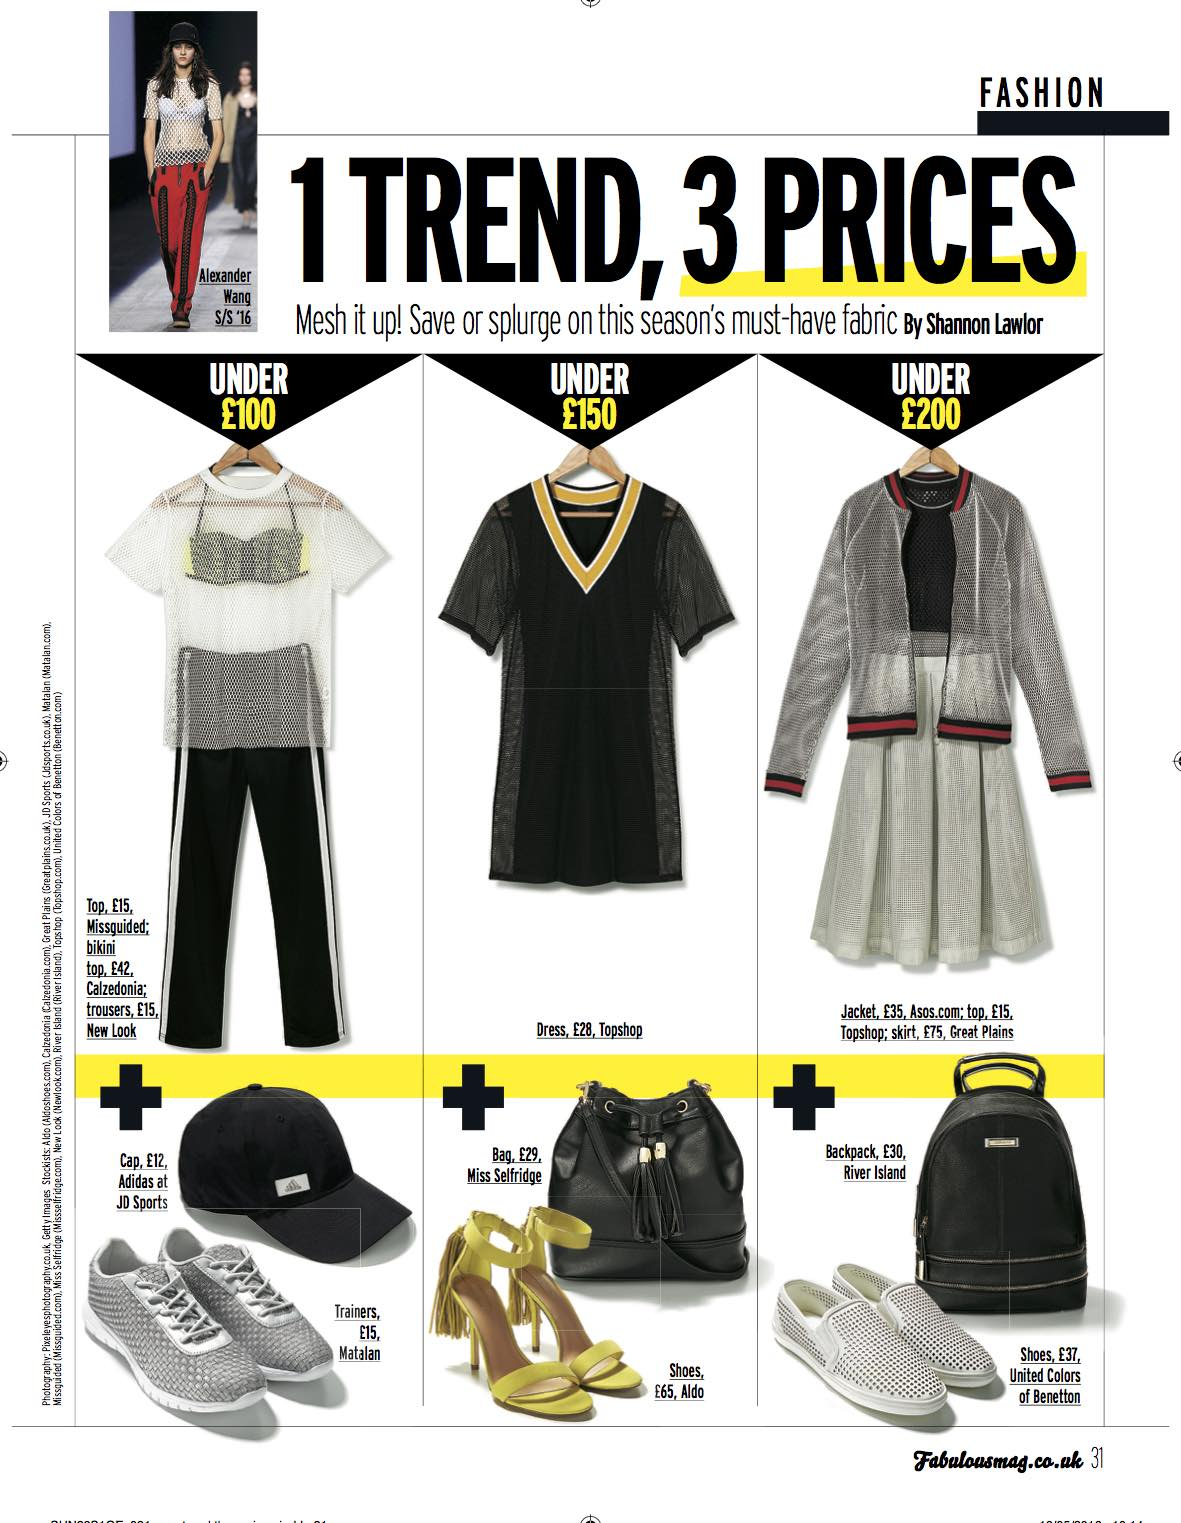 1 Trend, 3 Prices